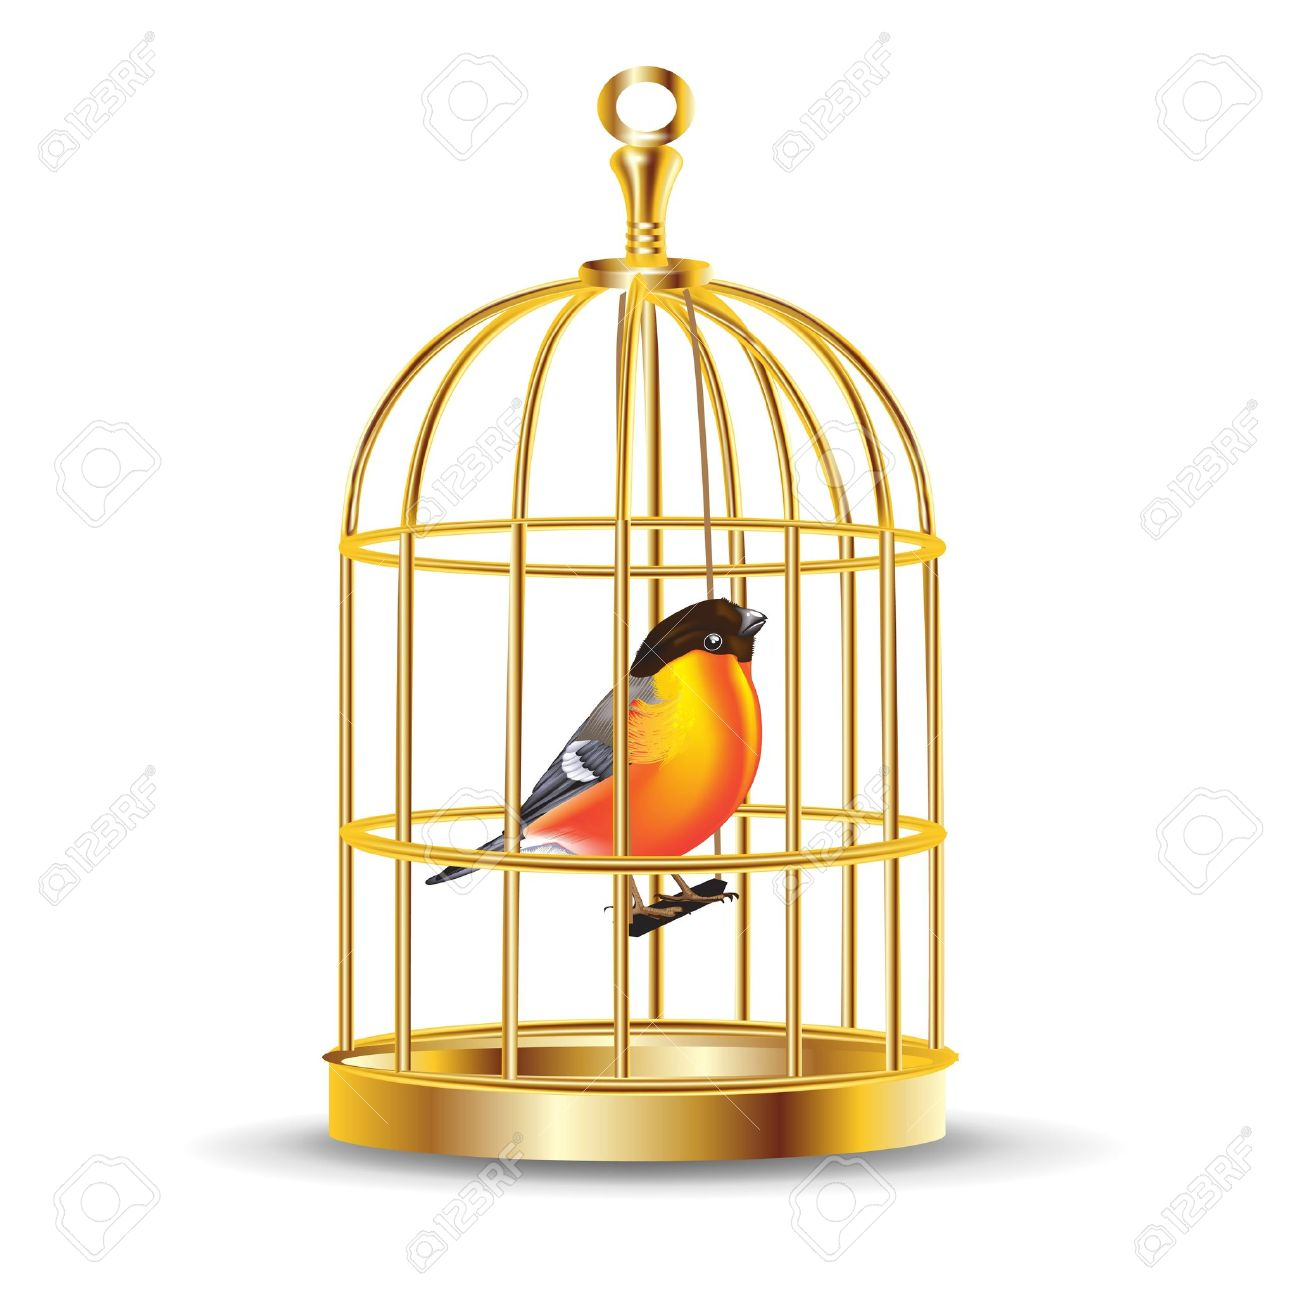 Golden Bird Cage With Bird Inside Isolated Royalty Free Cliparts.